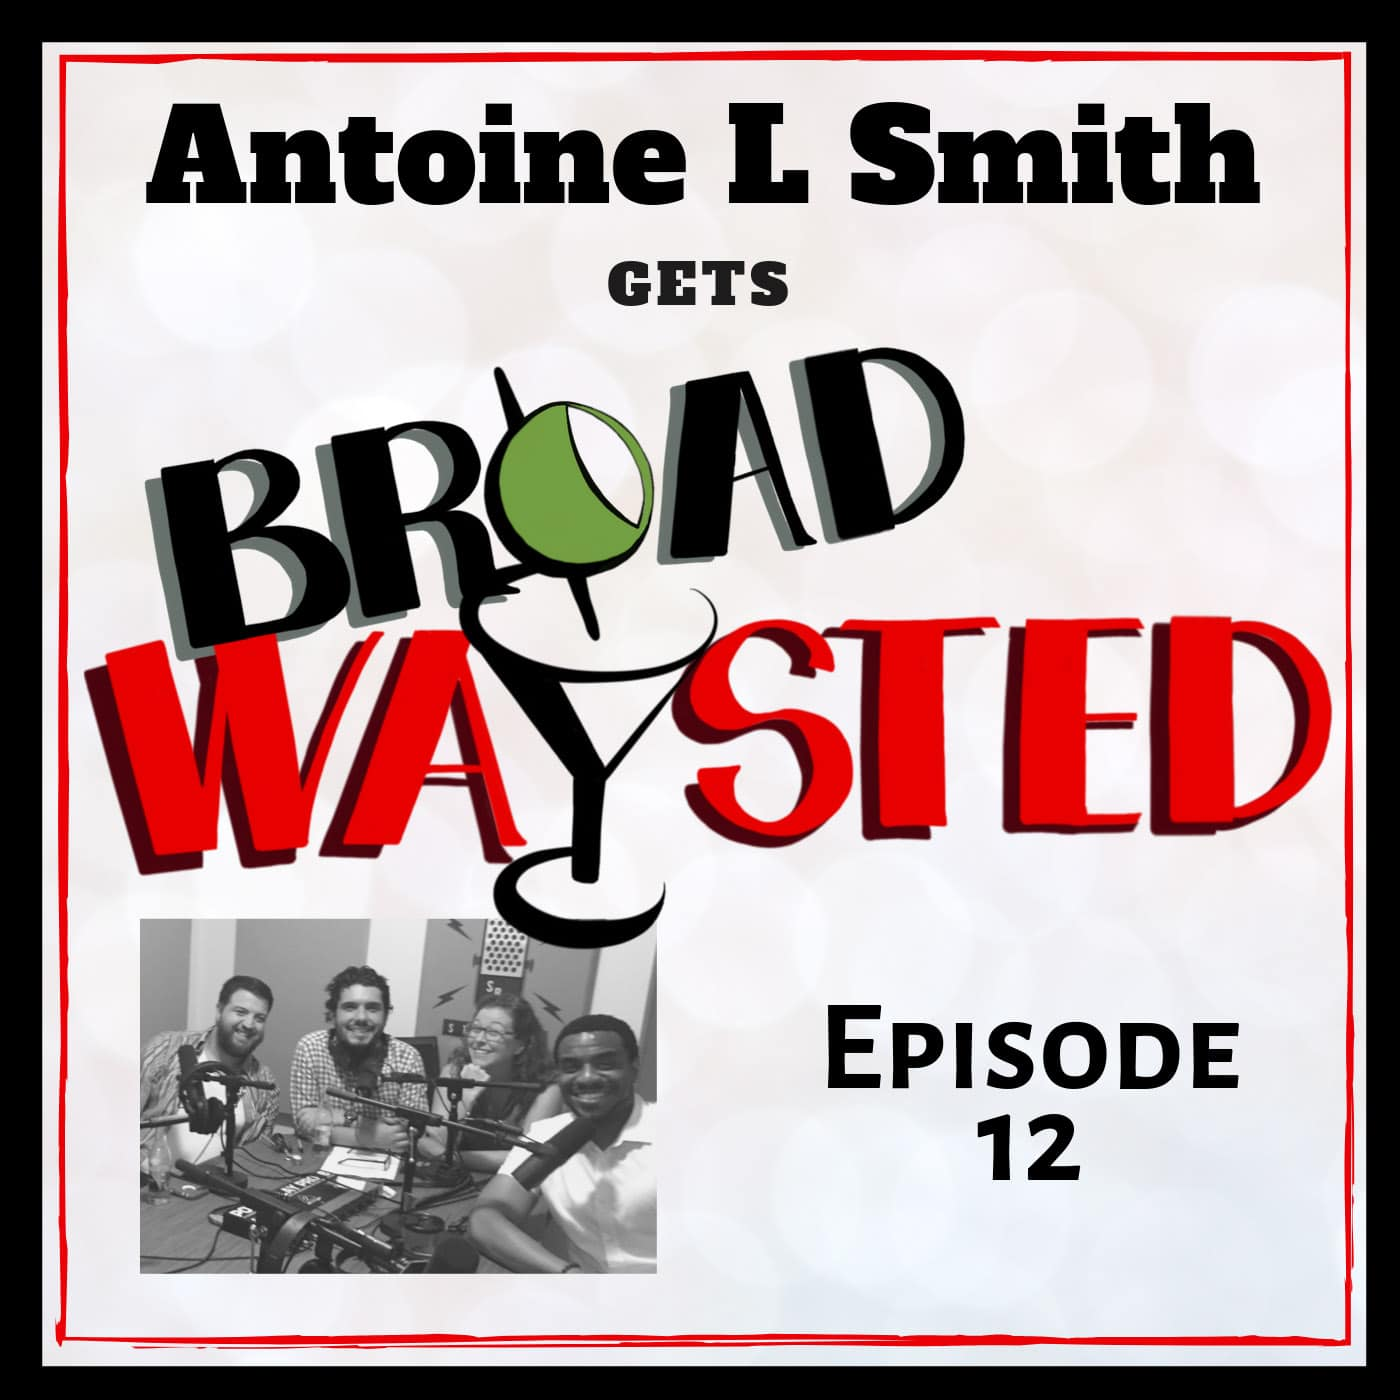 Broadwaysted Ep 12 Antoine L Smith